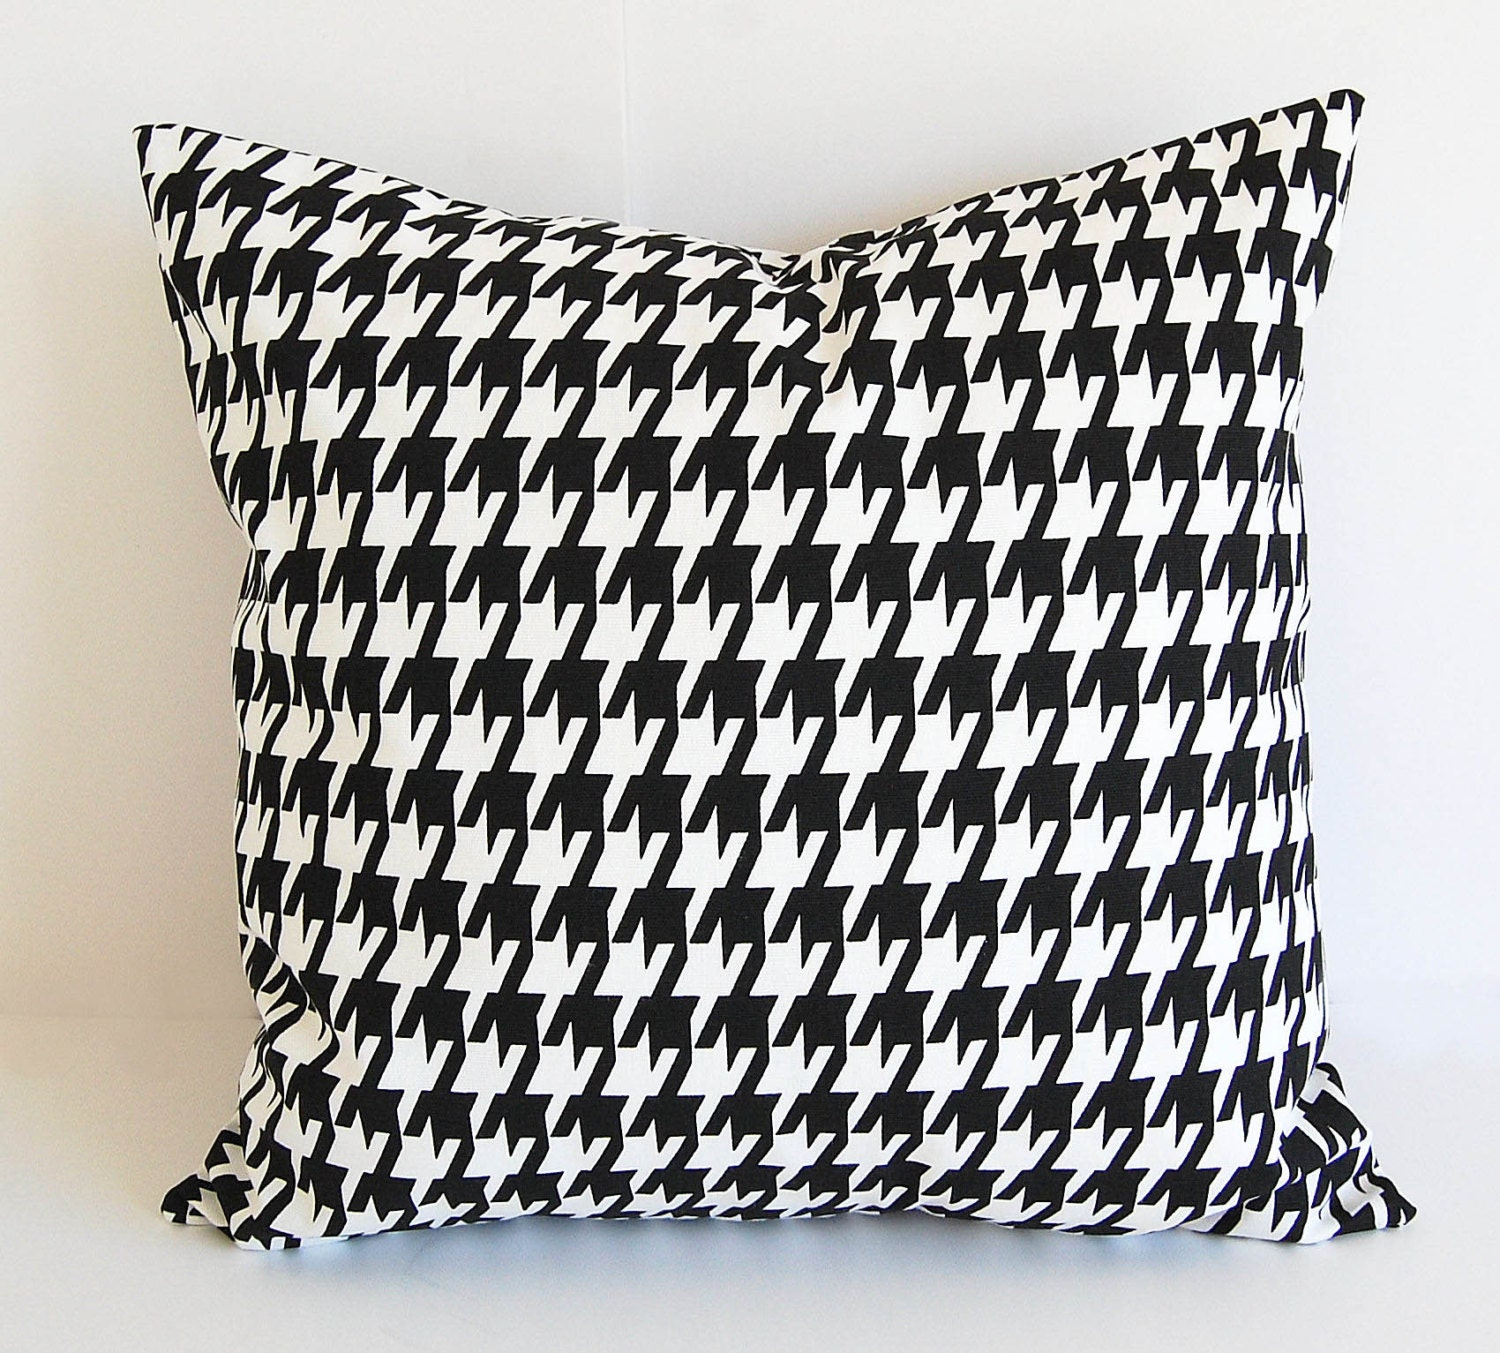 Black And White Houndstooth Throw Pillows : Houndstooth throw pillow cover One 16 x 16 by ThePillowPeople